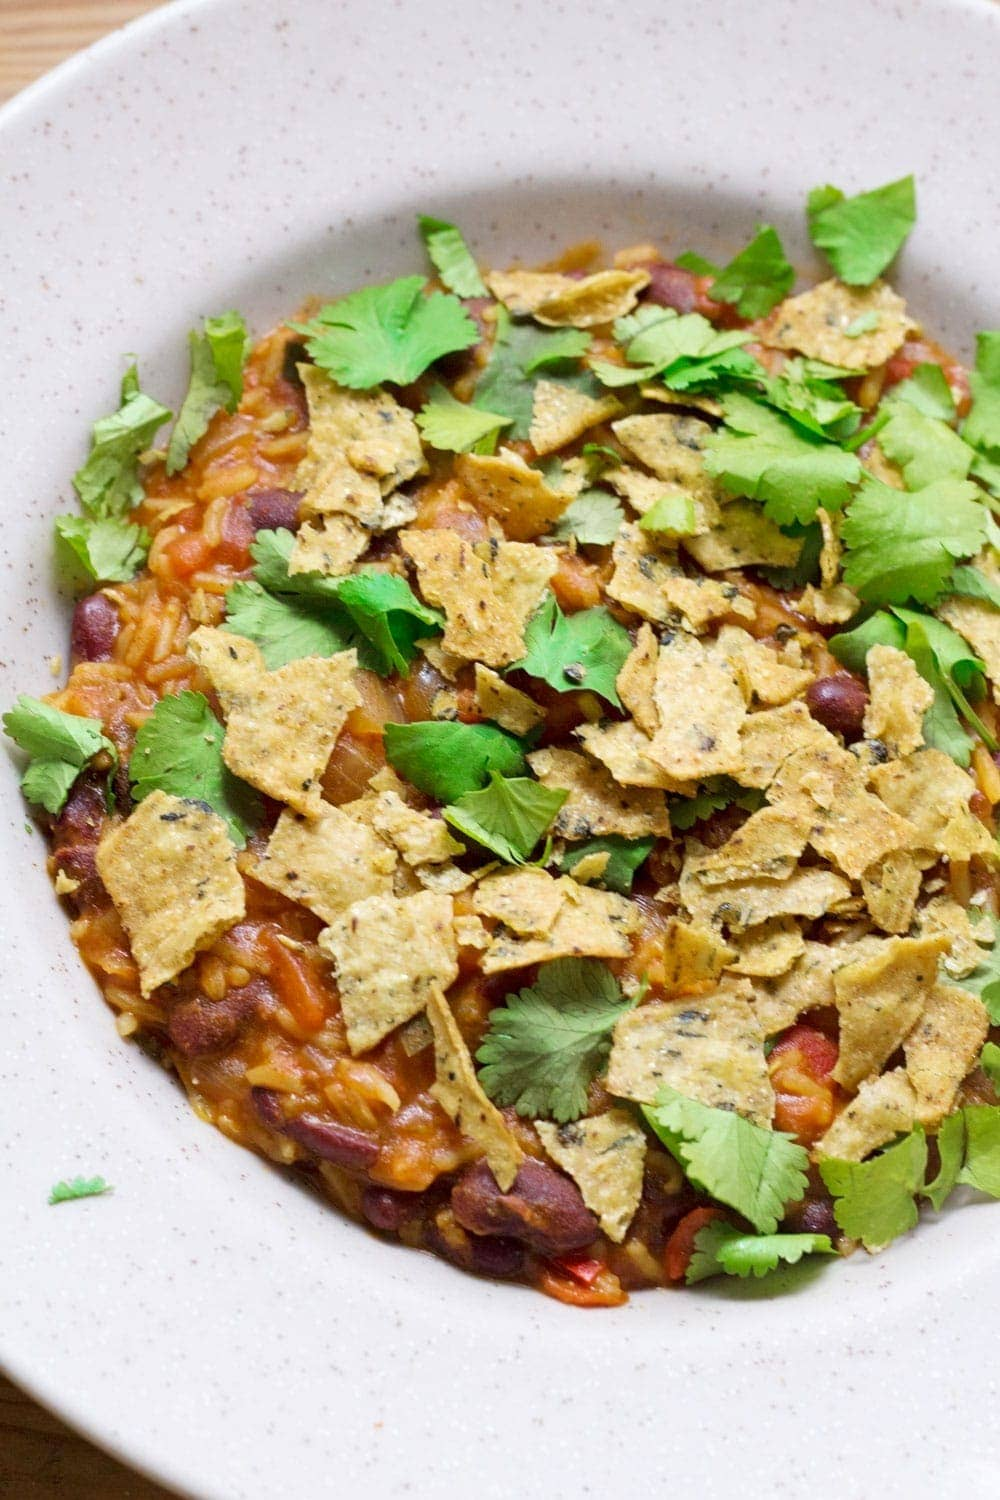 Cheesy Mexican rice and vegetable tortilla stew is a tasty vegetarian weeknight dinner packed with beans, vegetables and spices!